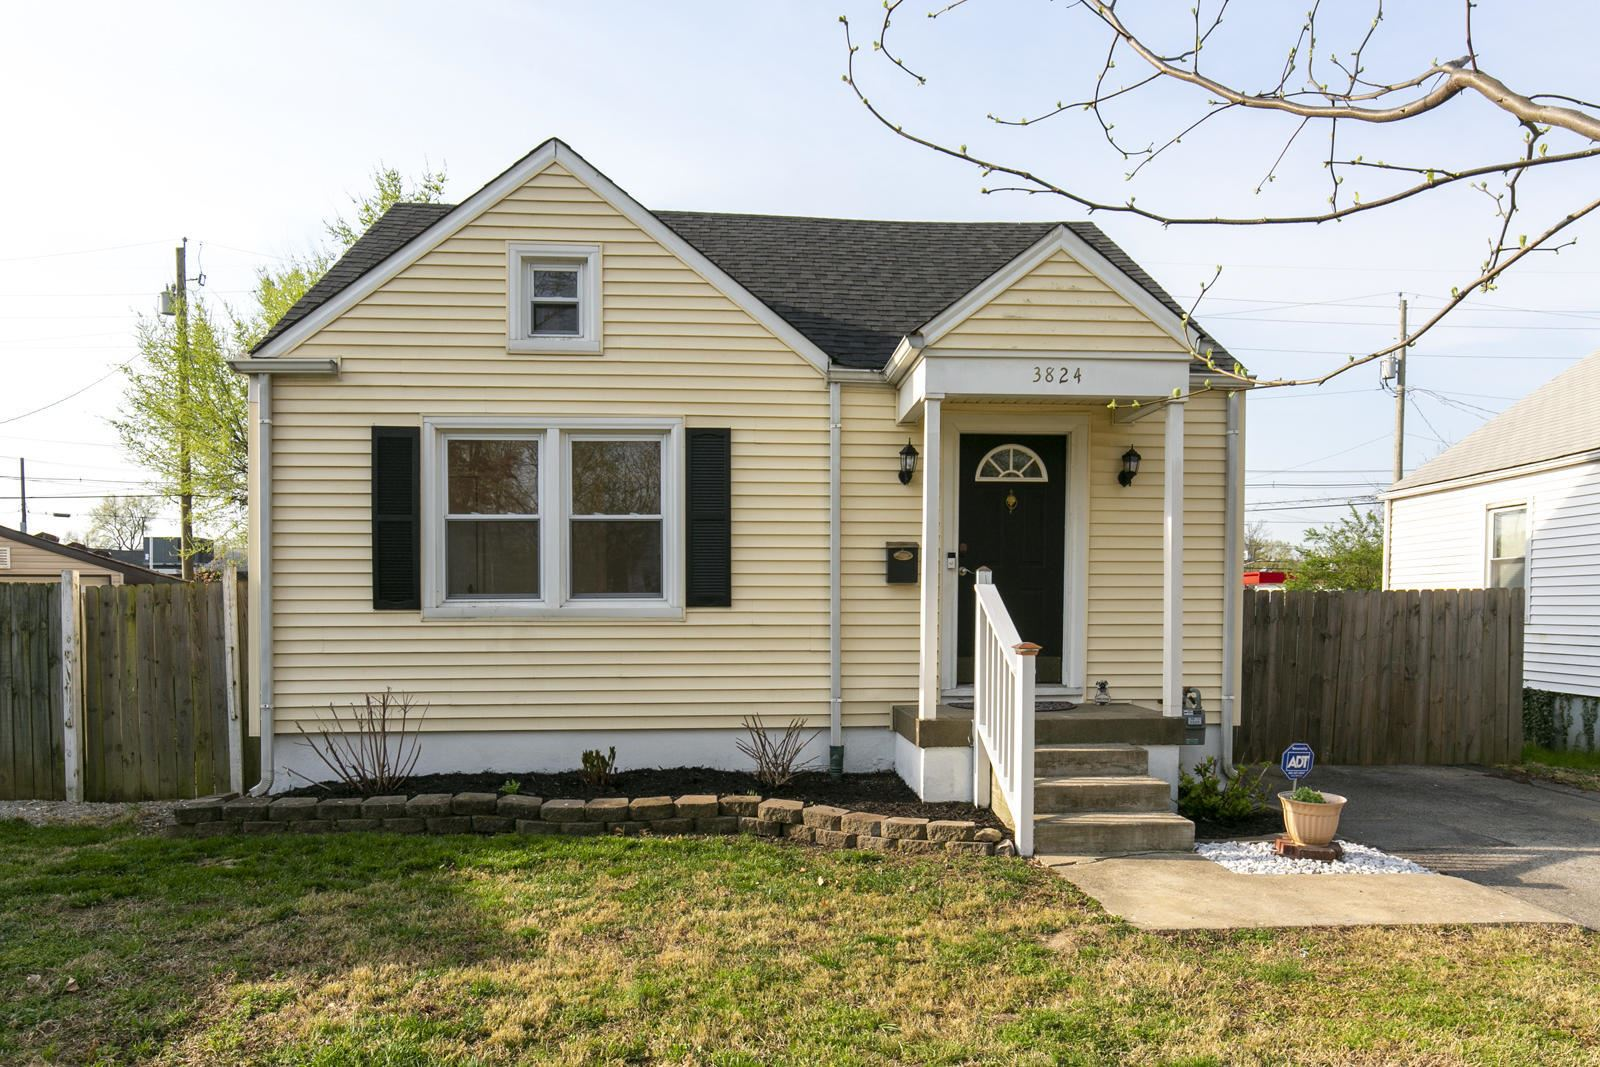 Photo for 3824 Staebler Ave, Louisville, KY 40207 (MLS # 1582748)